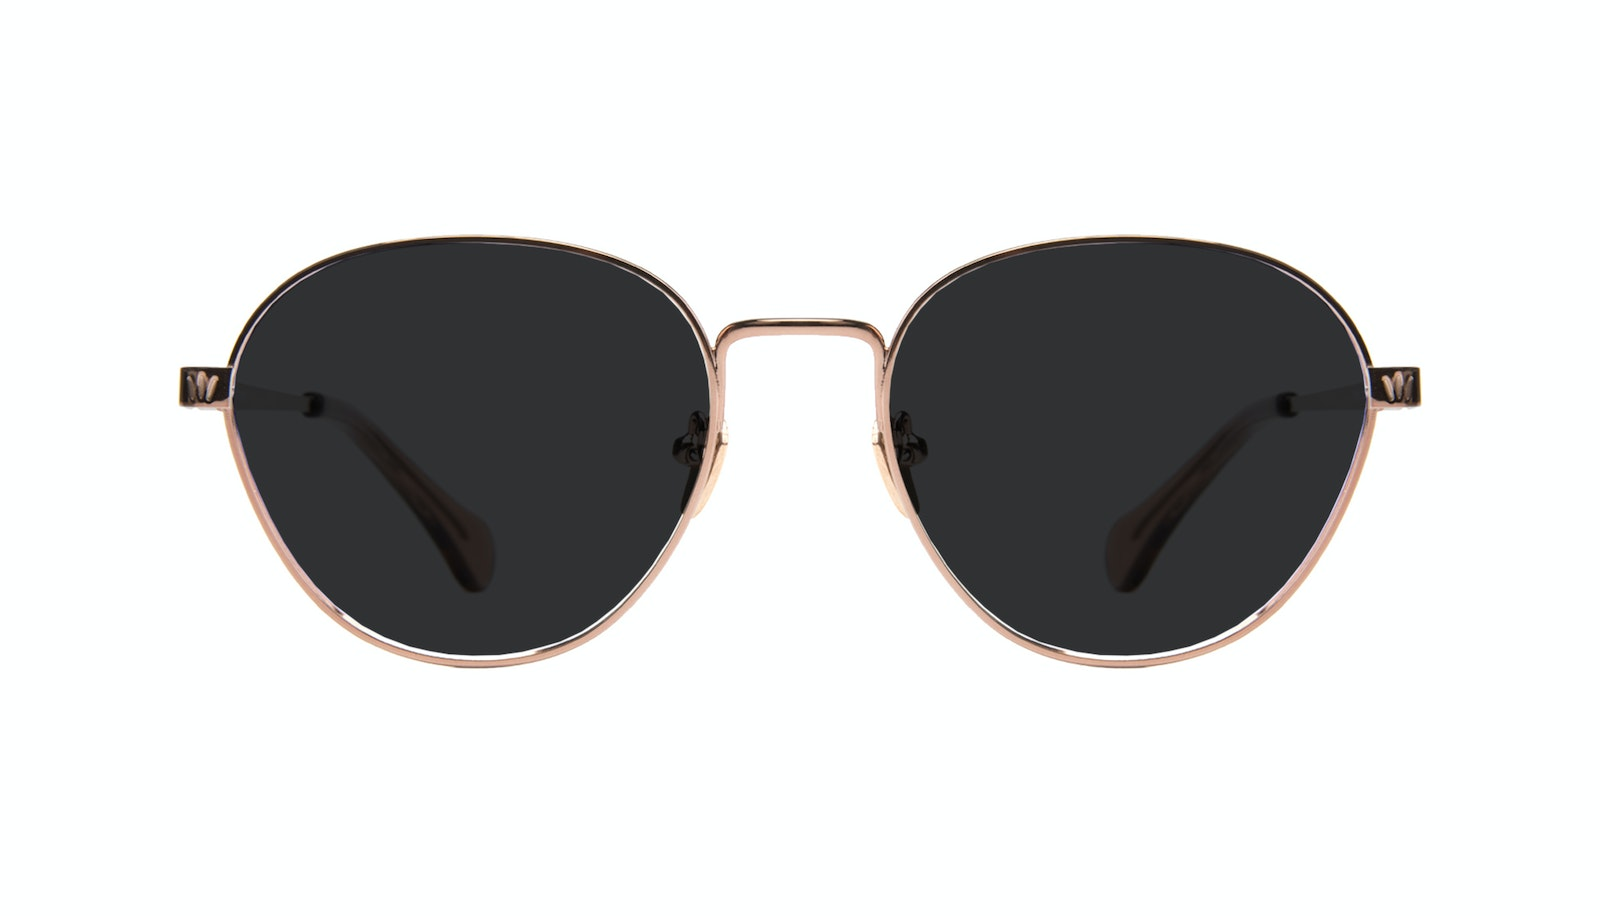 Affordable Fashion Glasses Round Sunglasses Women Brace Rose Gold